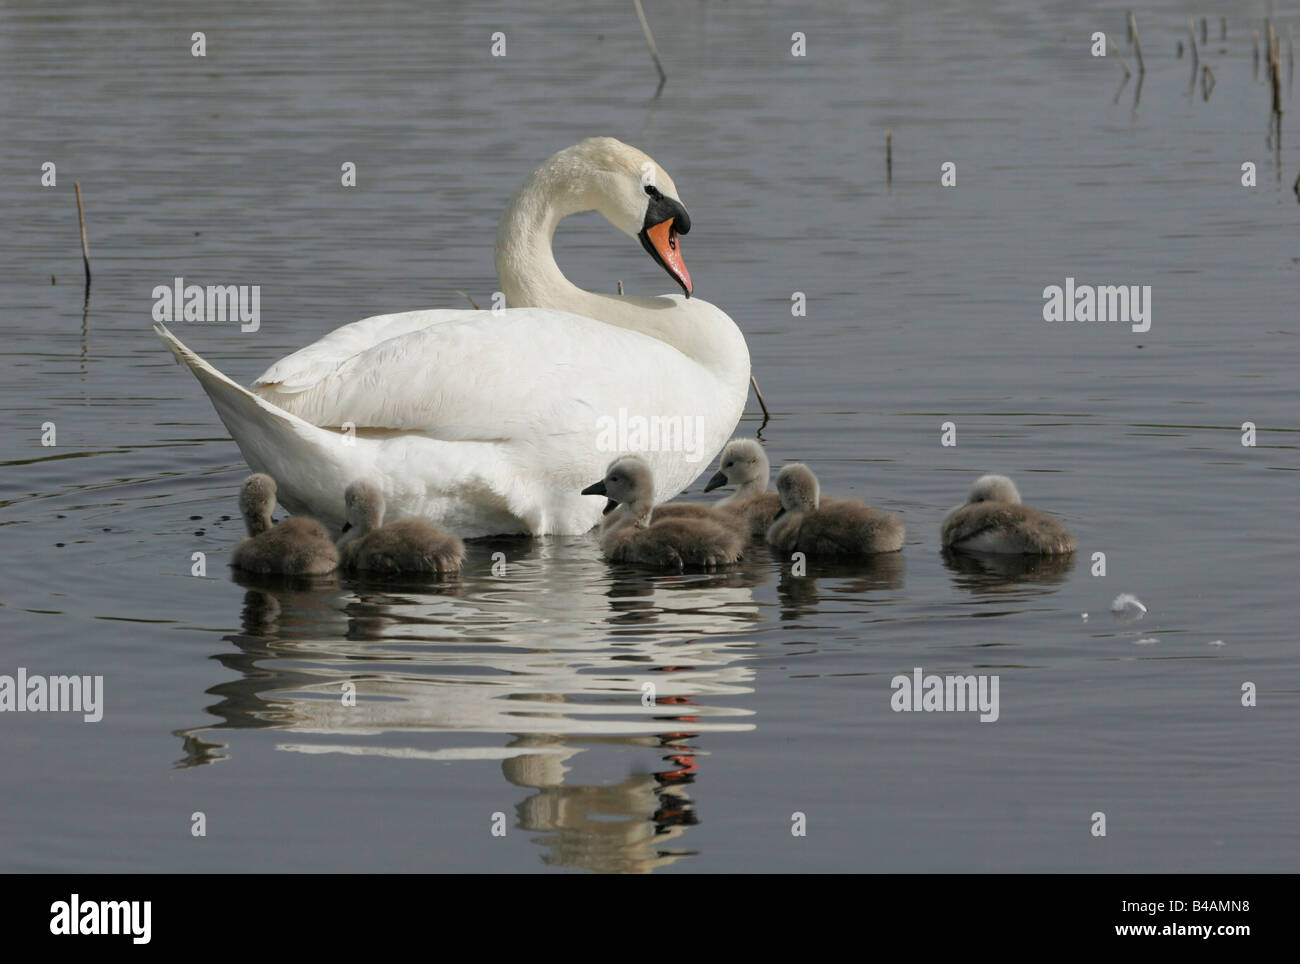 zoology / animals, avian / birds, Mute Swan, (Cygenus olor), swimming in lake with cub, Neusiedler See, Austria, Stock Photo